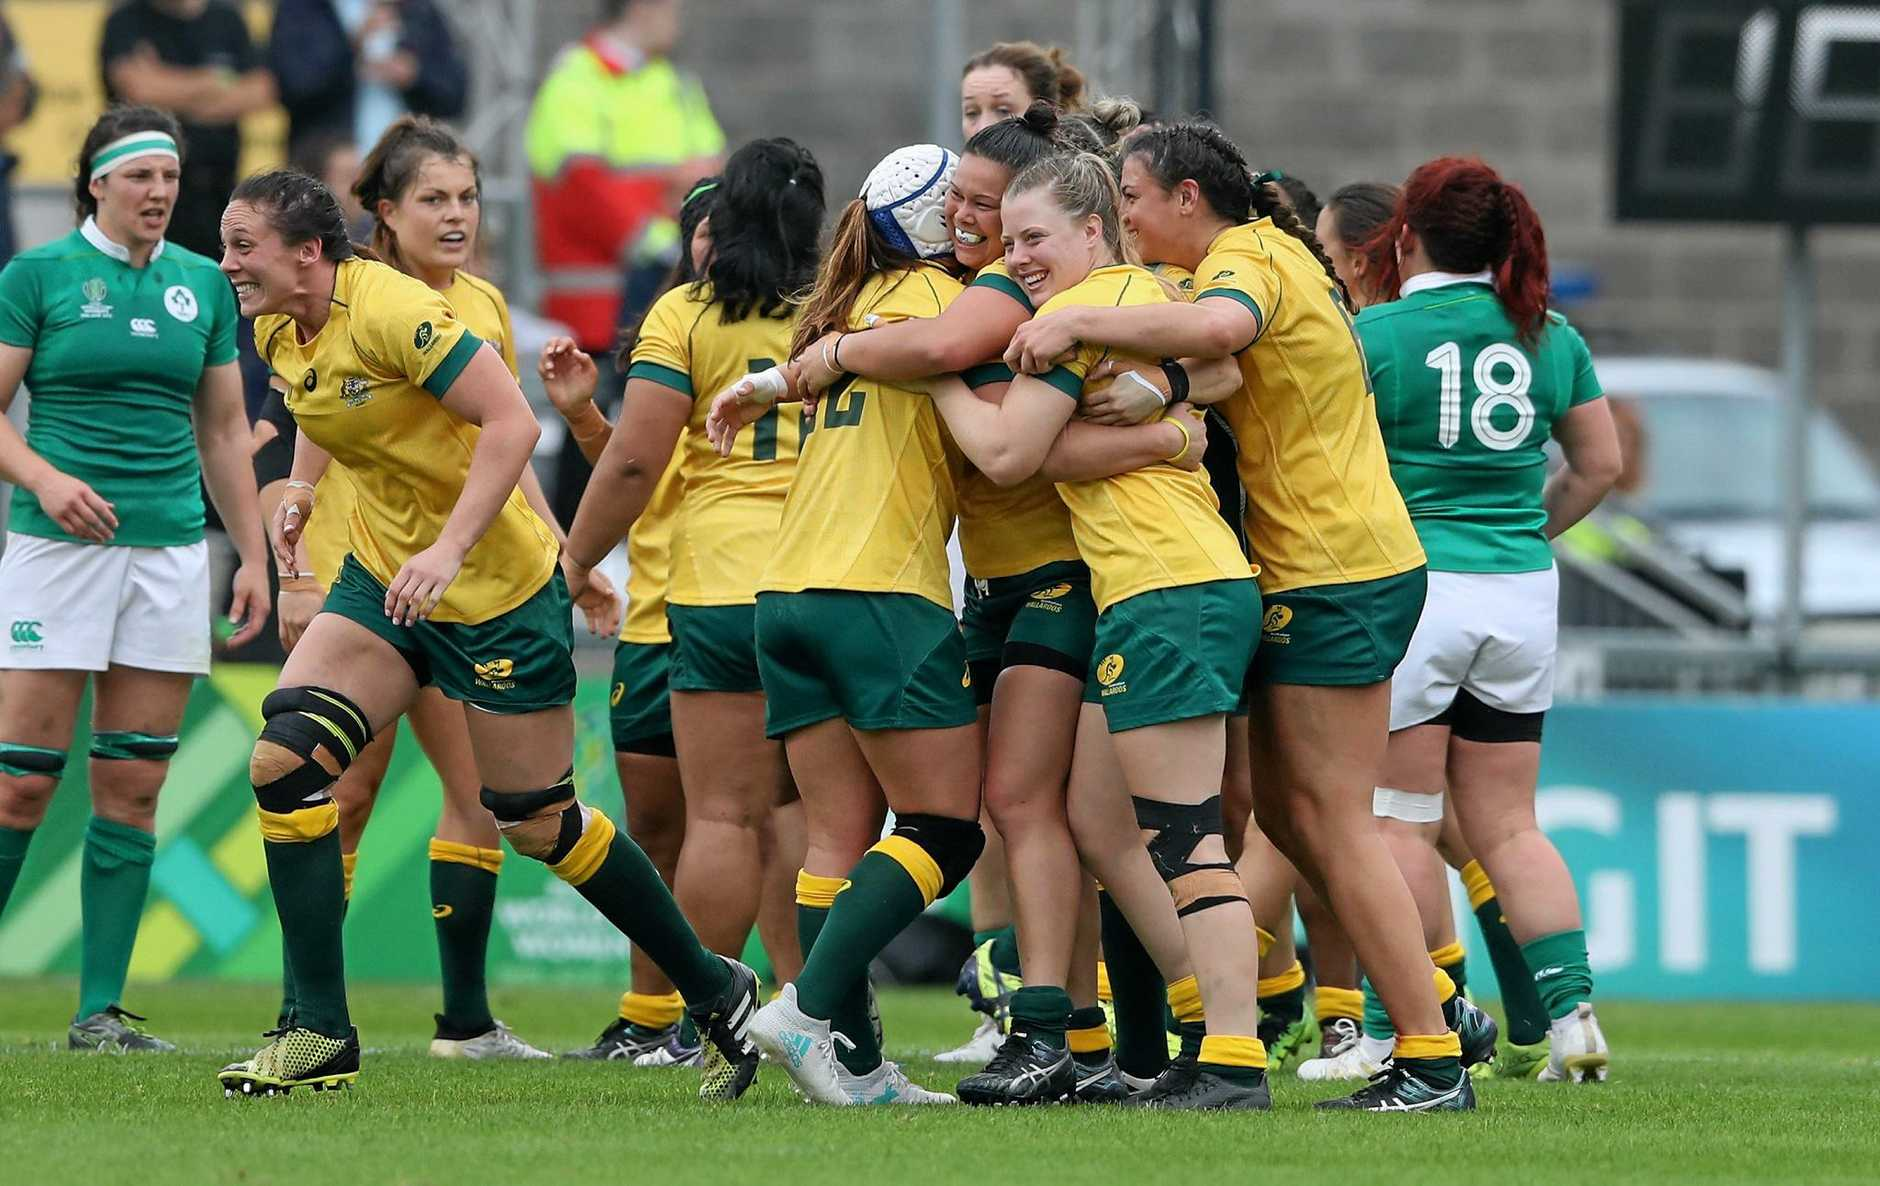 Australia's players celebrate after their victory during the Women's Rugby World Cup 2017 match between Ireland and Australia.